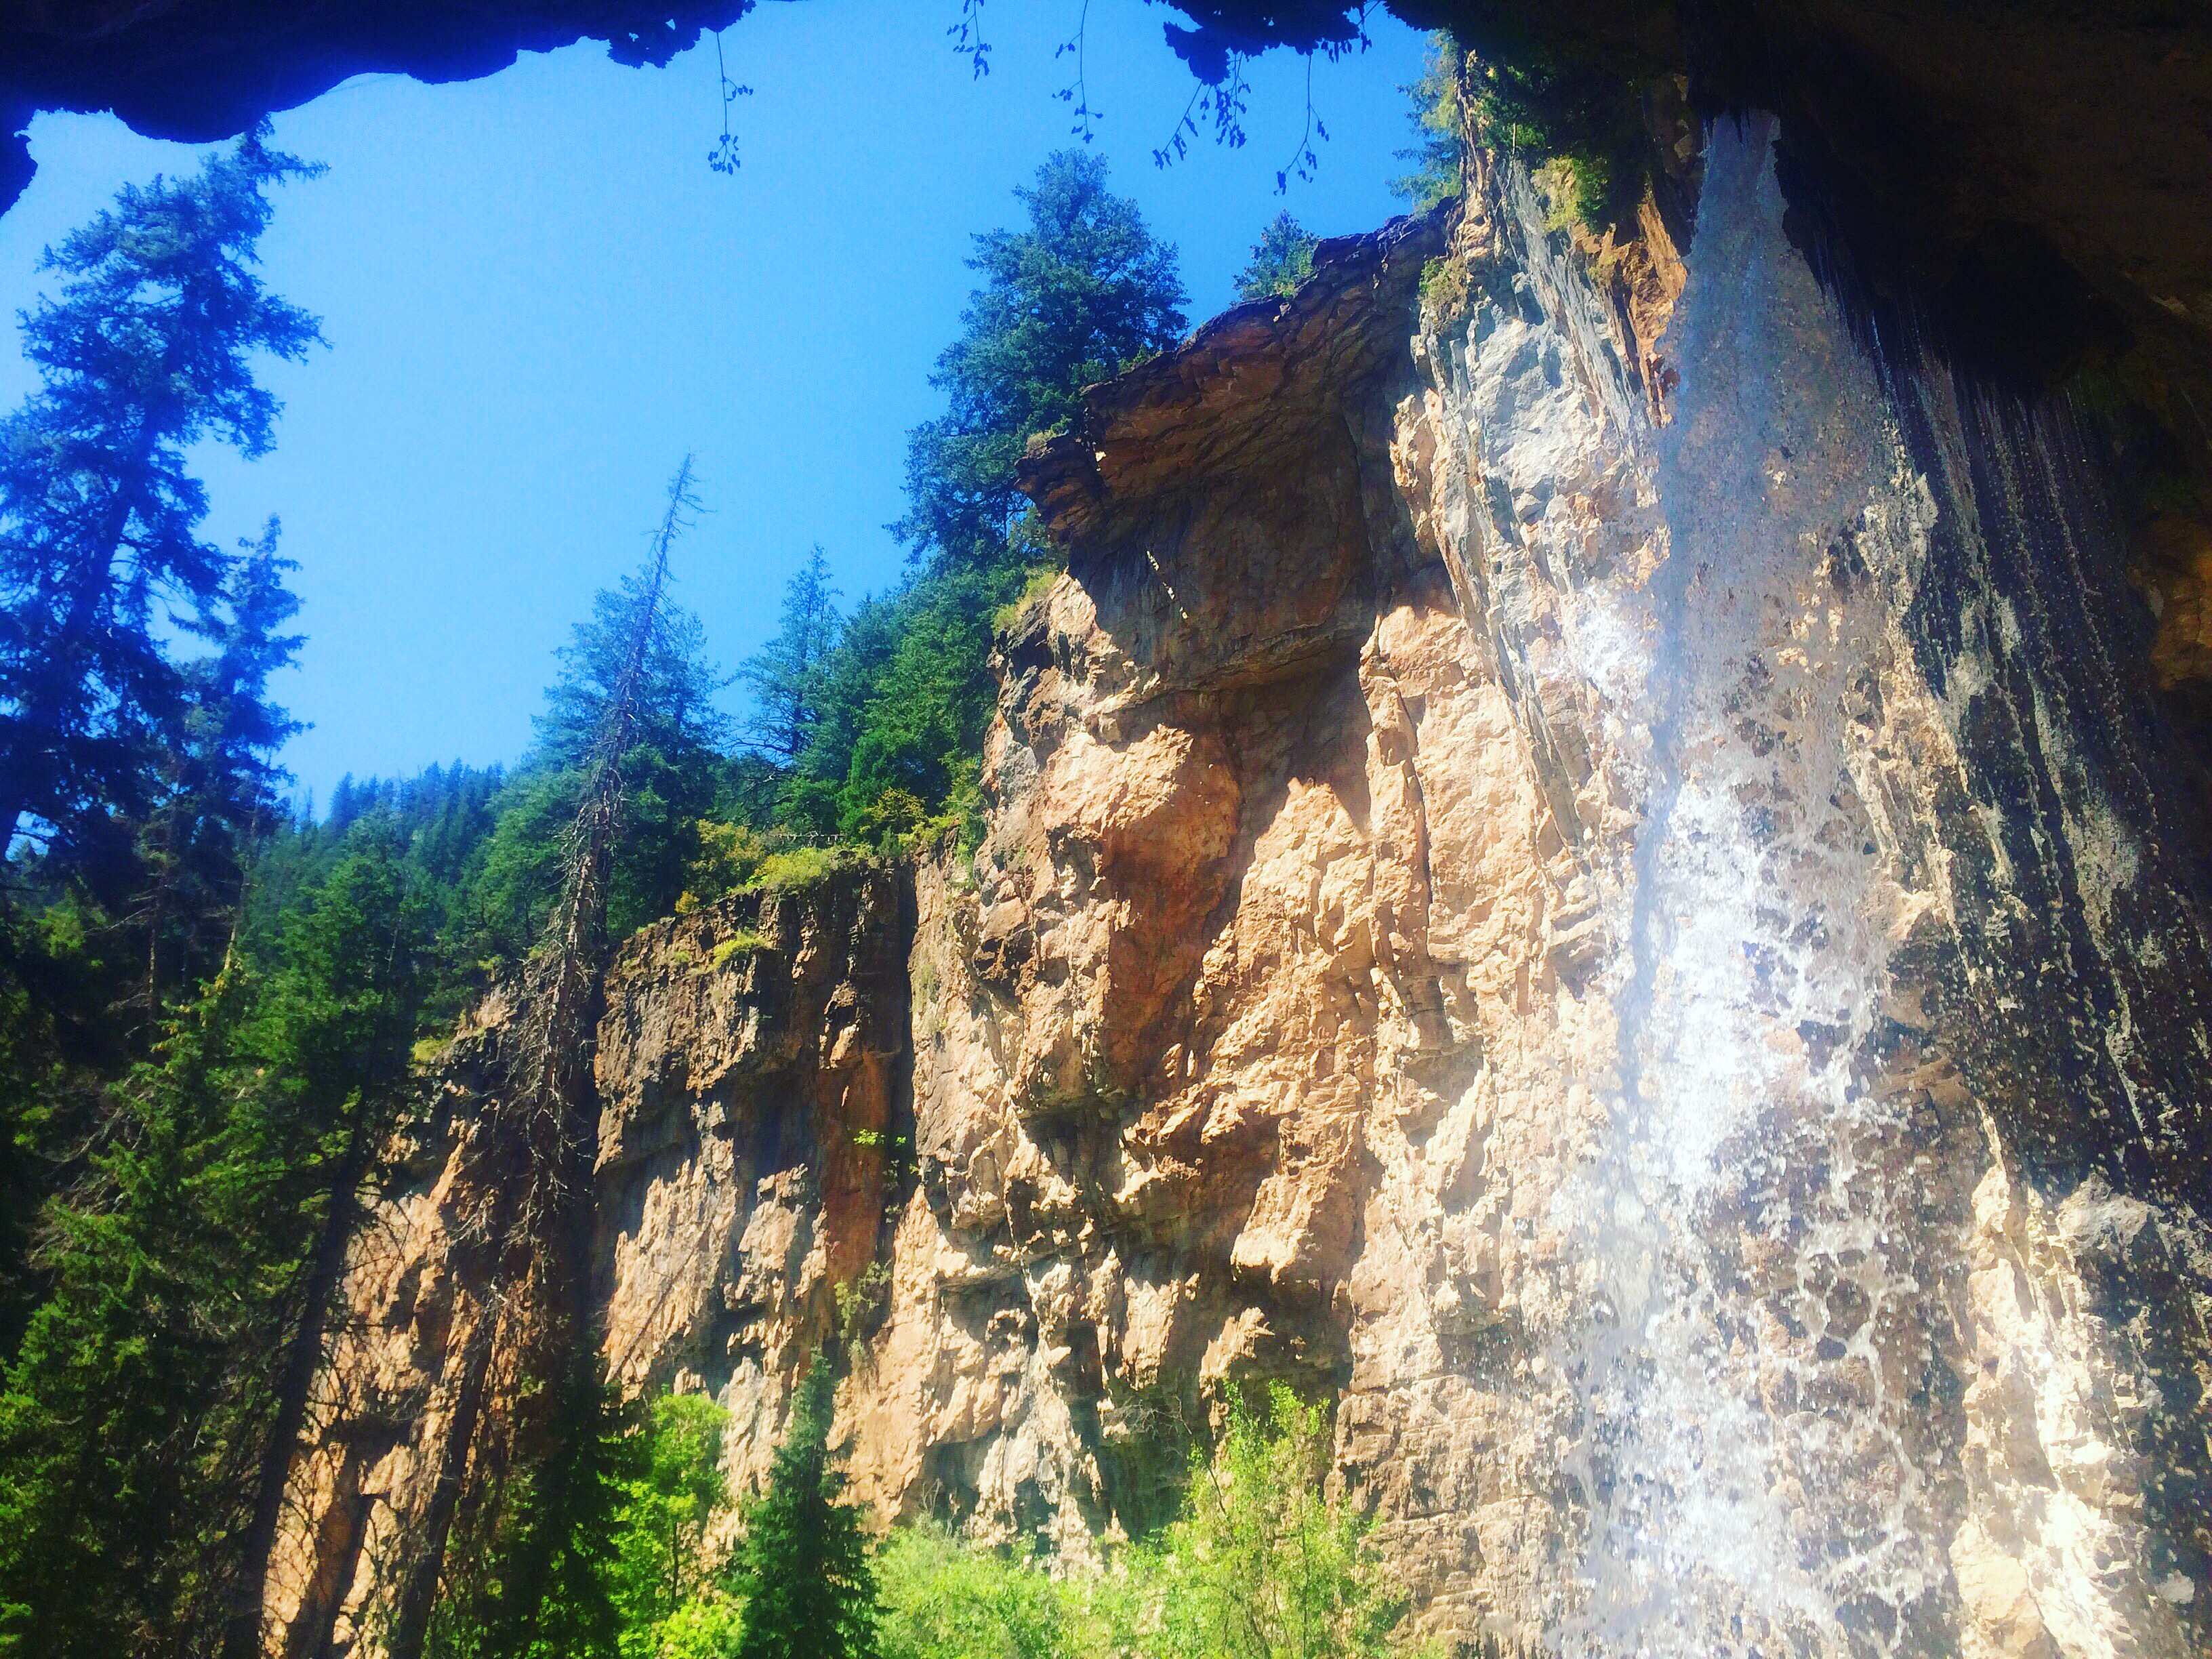 Behind the Waterfall